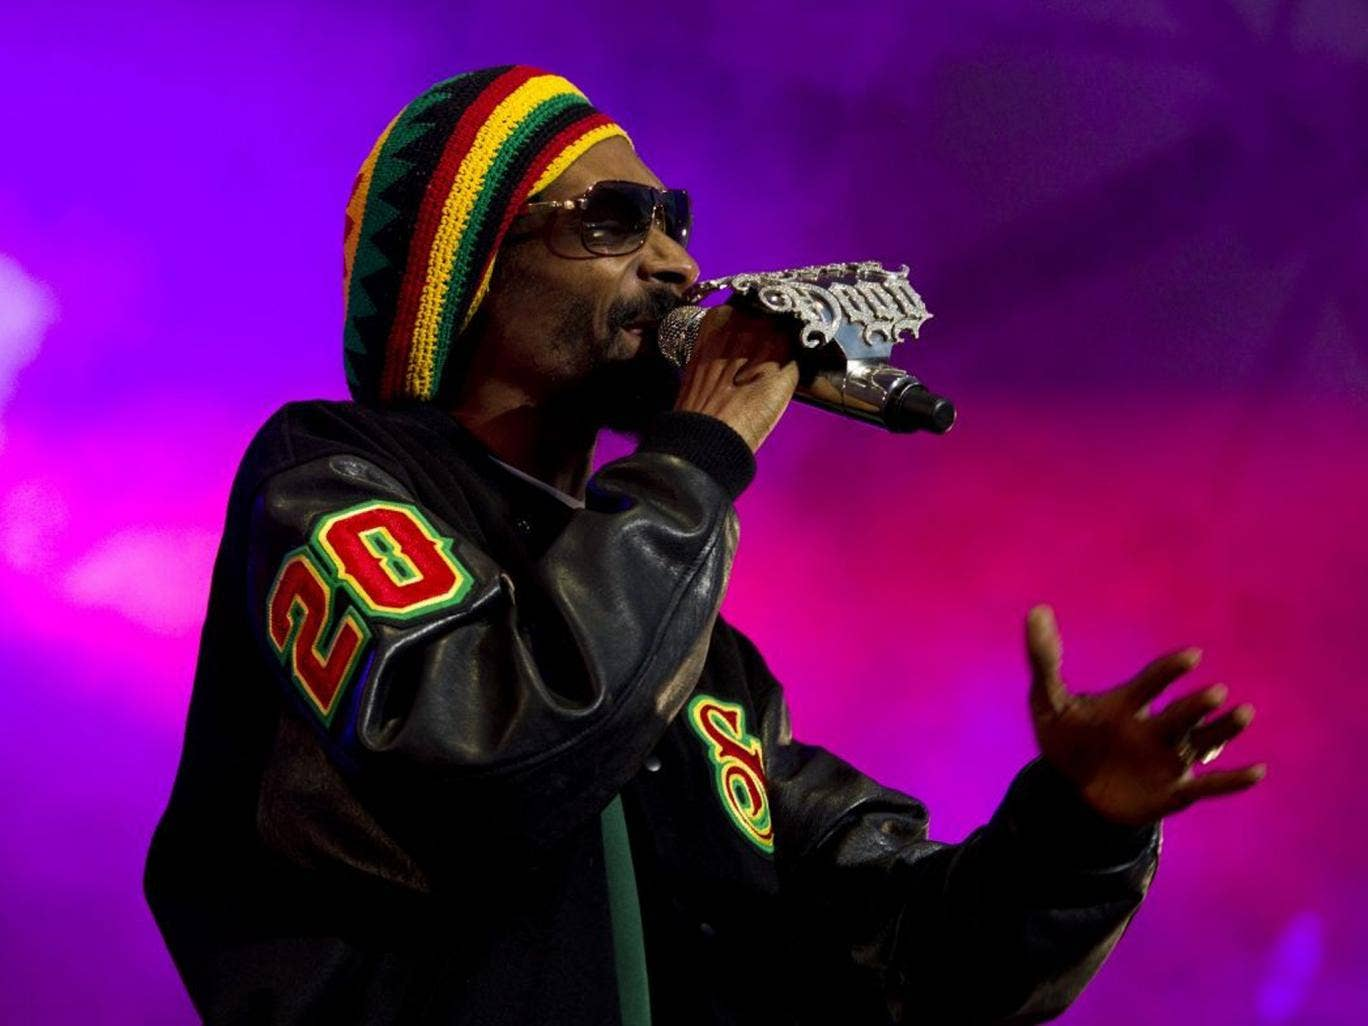 Snoop Lion is a shrewd business man. He has managed to persuade a dozen fans to part with nearly $100 to download a virtual joint on his Snoopify app